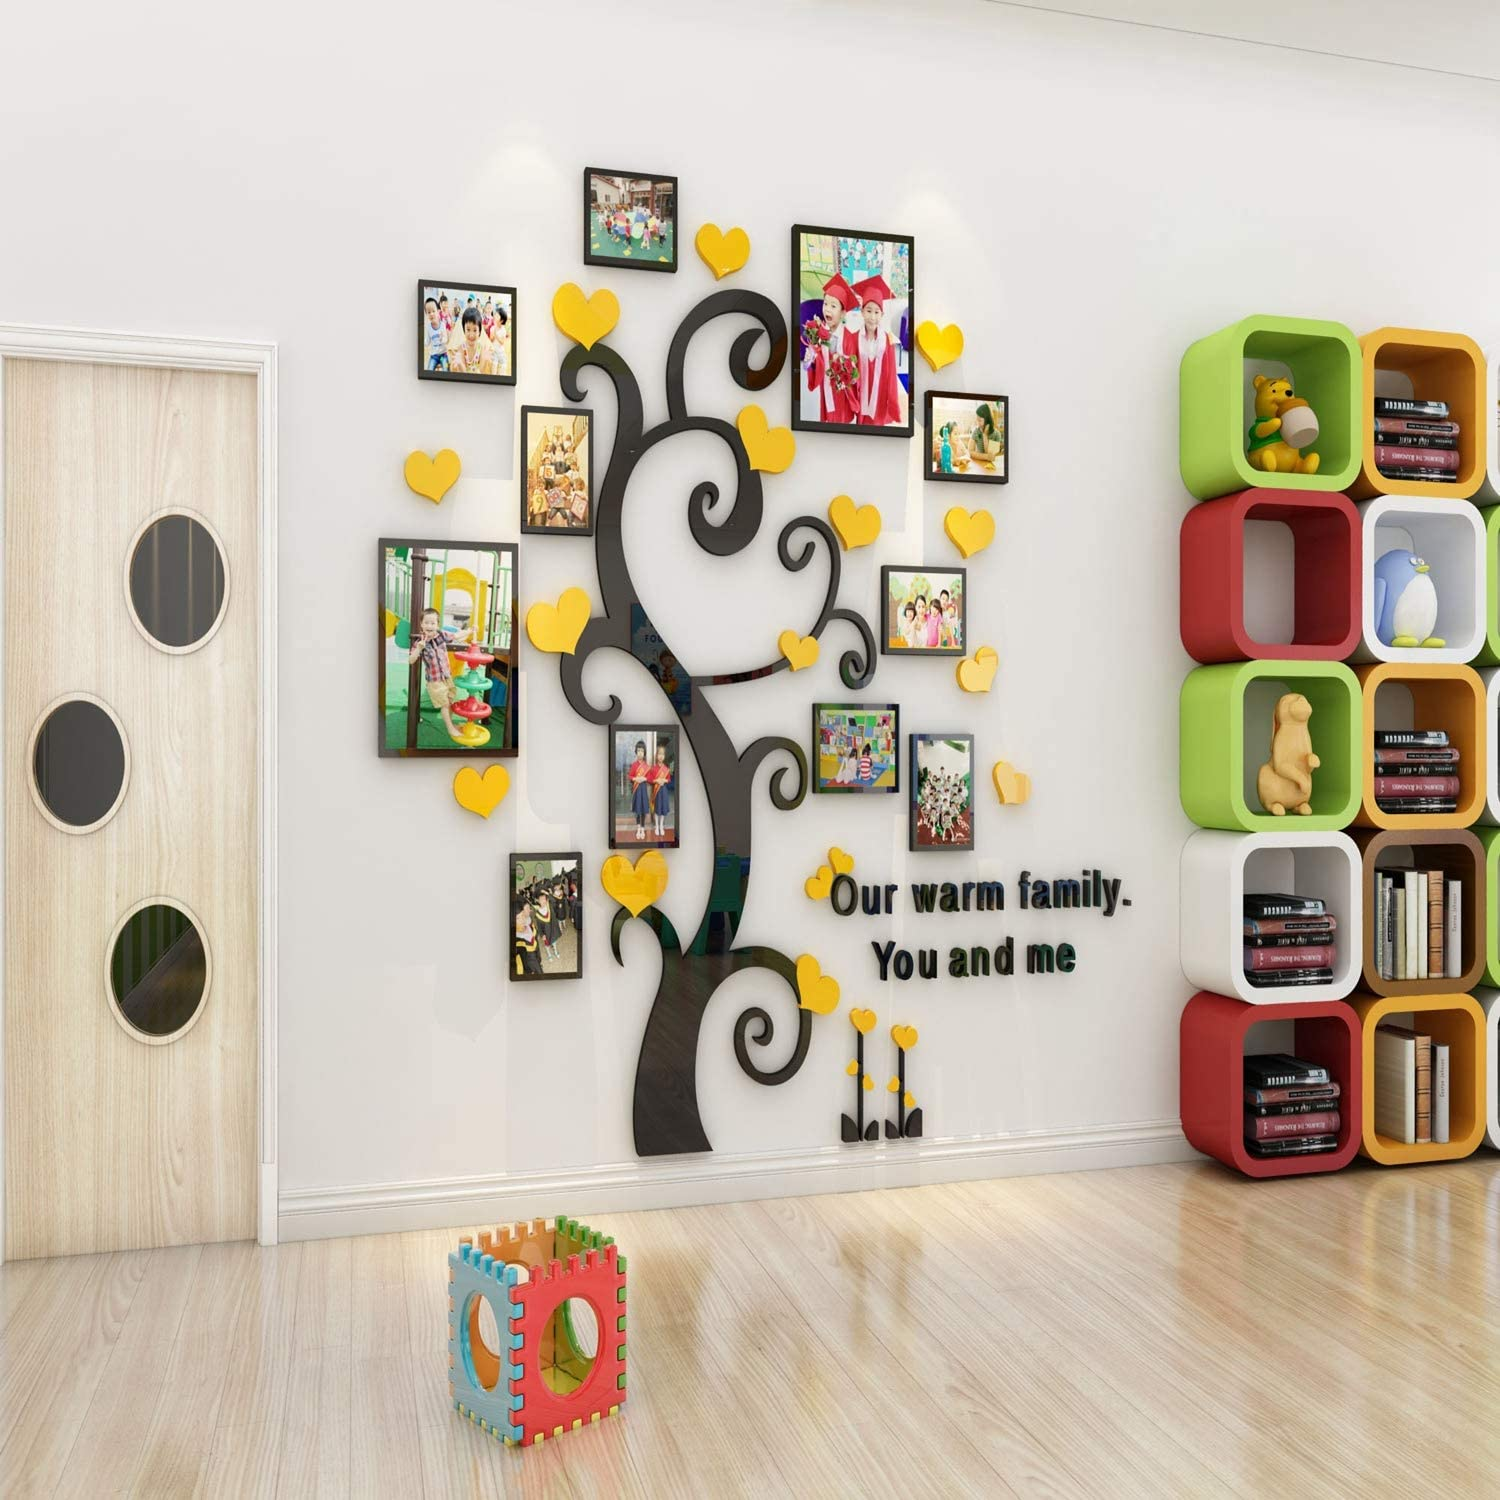 Unitendo 3D Wall Stickers Photo Frames FamilyTree Wall Decal Easy to Install &Apply DIY Photo Gallery Frame Decor Sticker Home Art Decor, Yellow Heart and Thick Trunk, L.